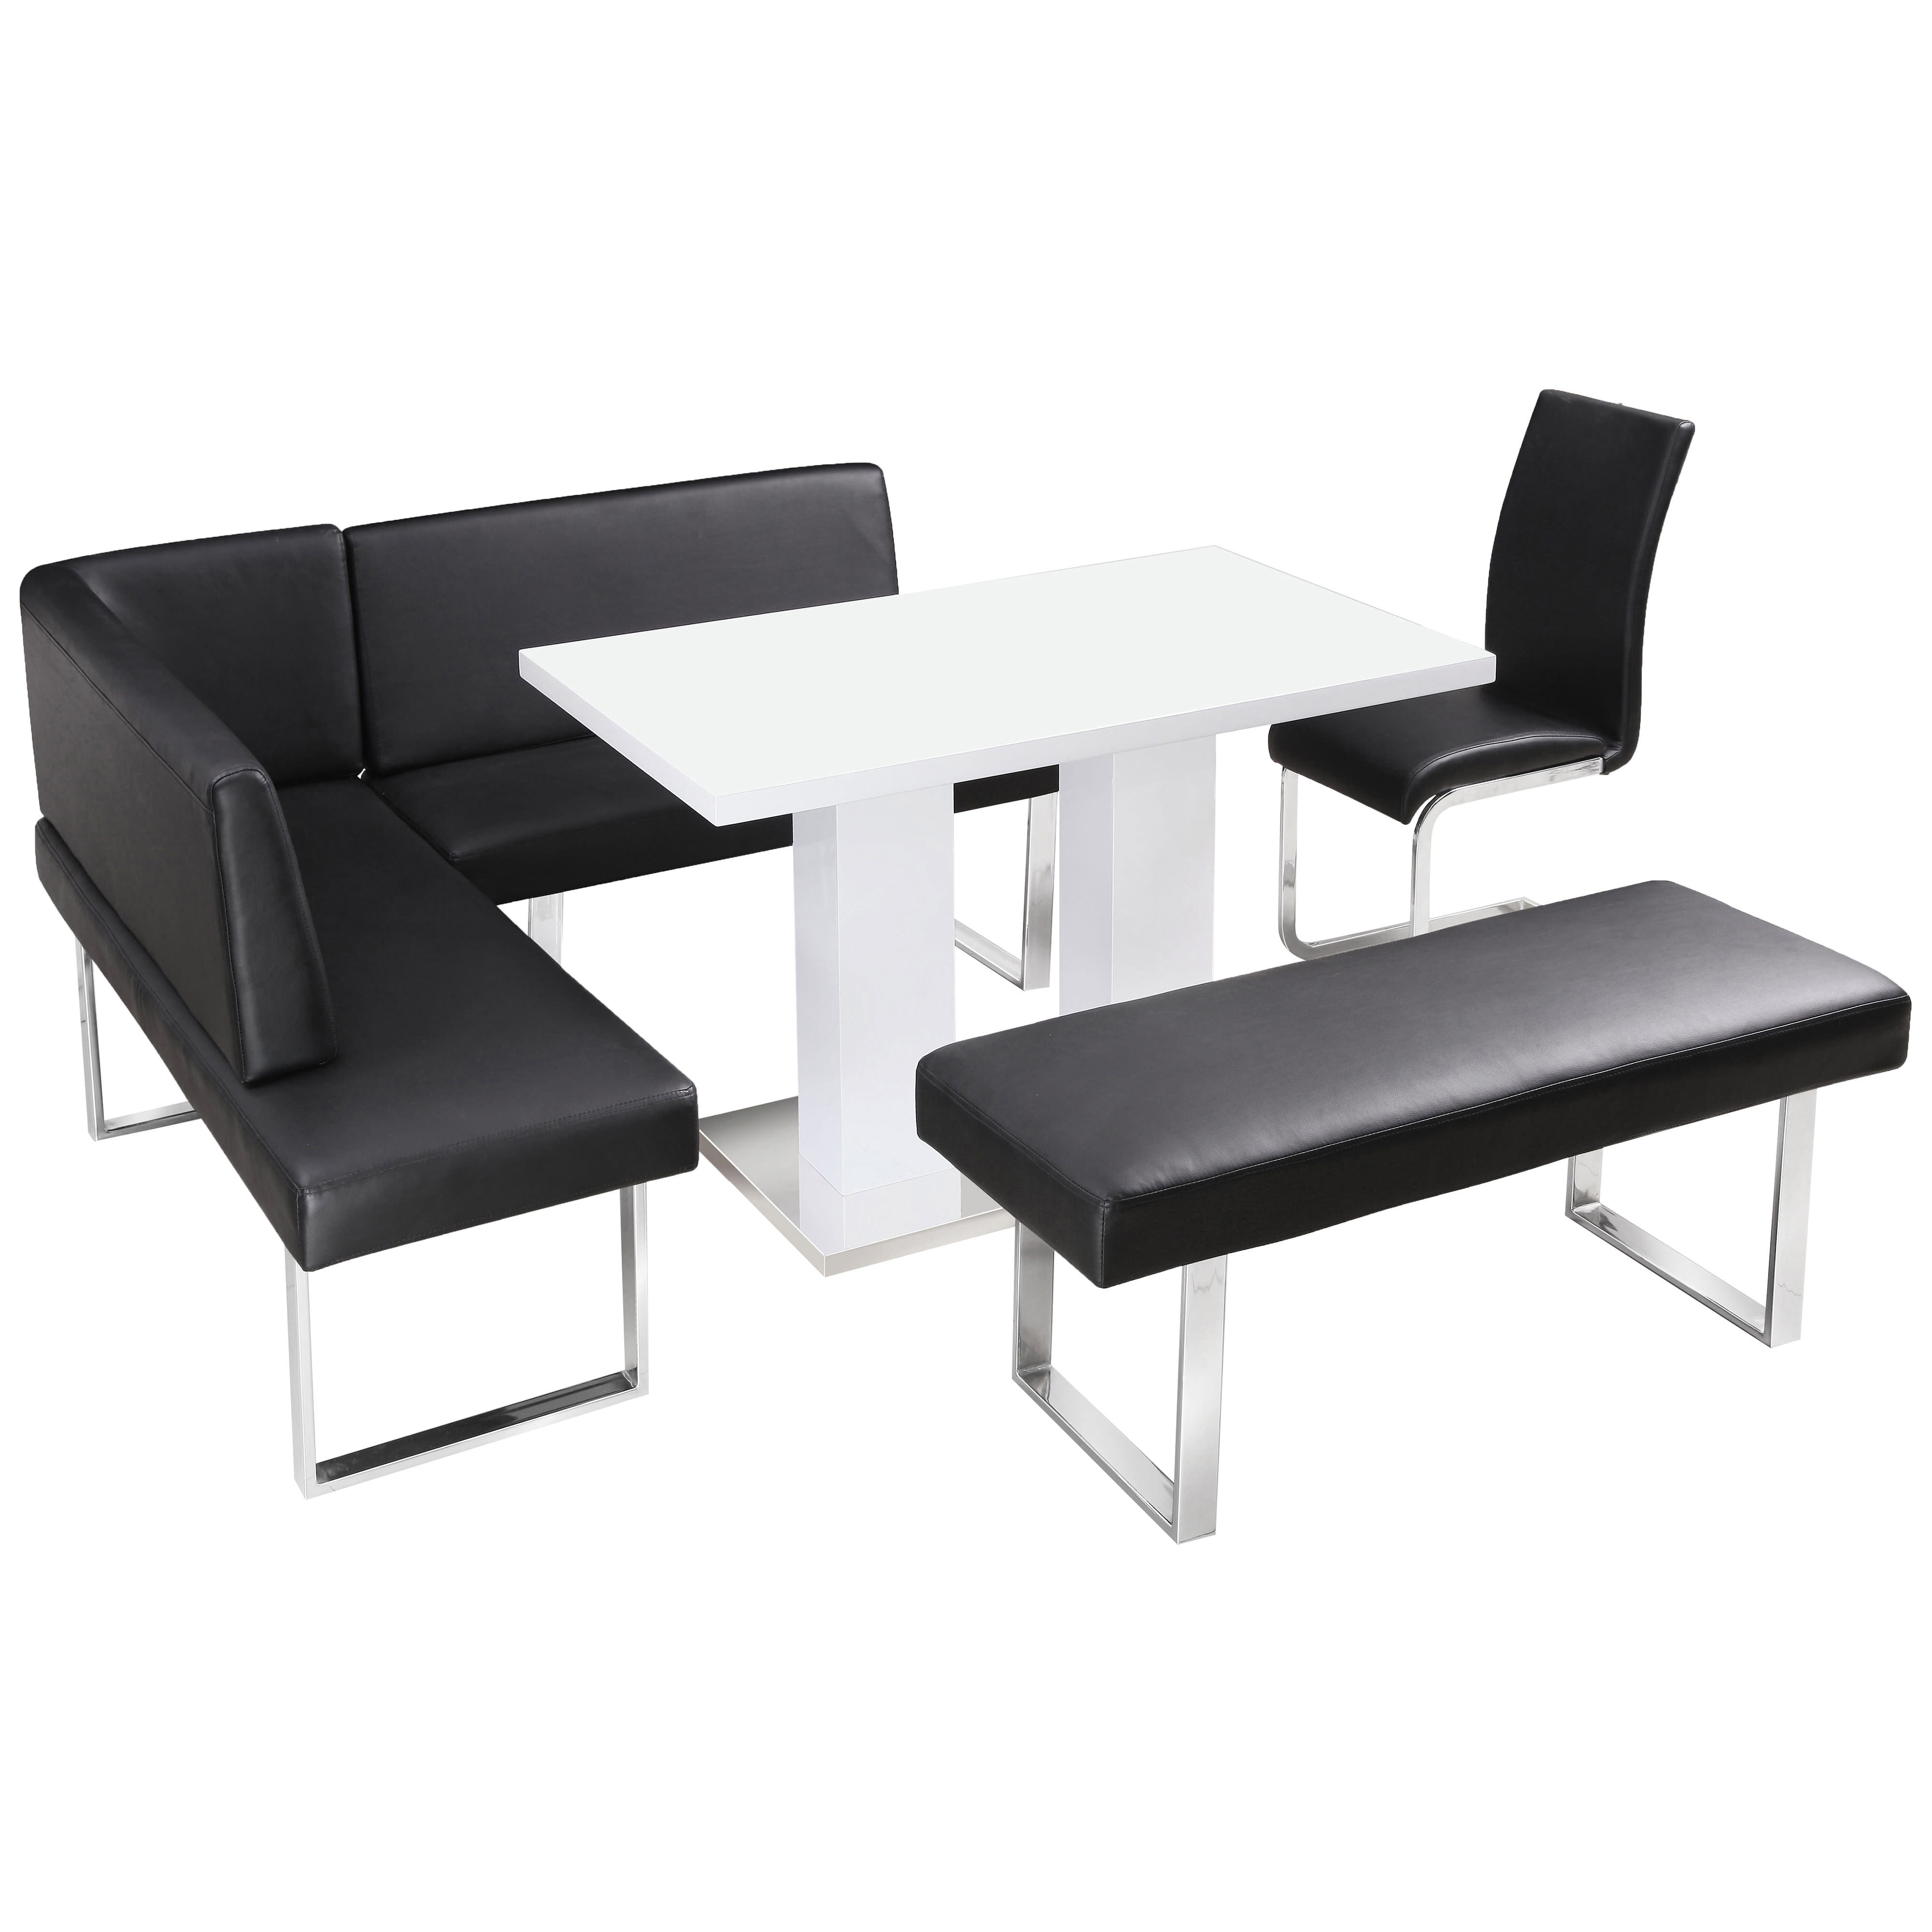 Popular High Gloss Dining Table And Chair Set With Corner Bench & 1 Seat Intended For Black High Gloss Dining Chairs (Gallery 15 of 25)